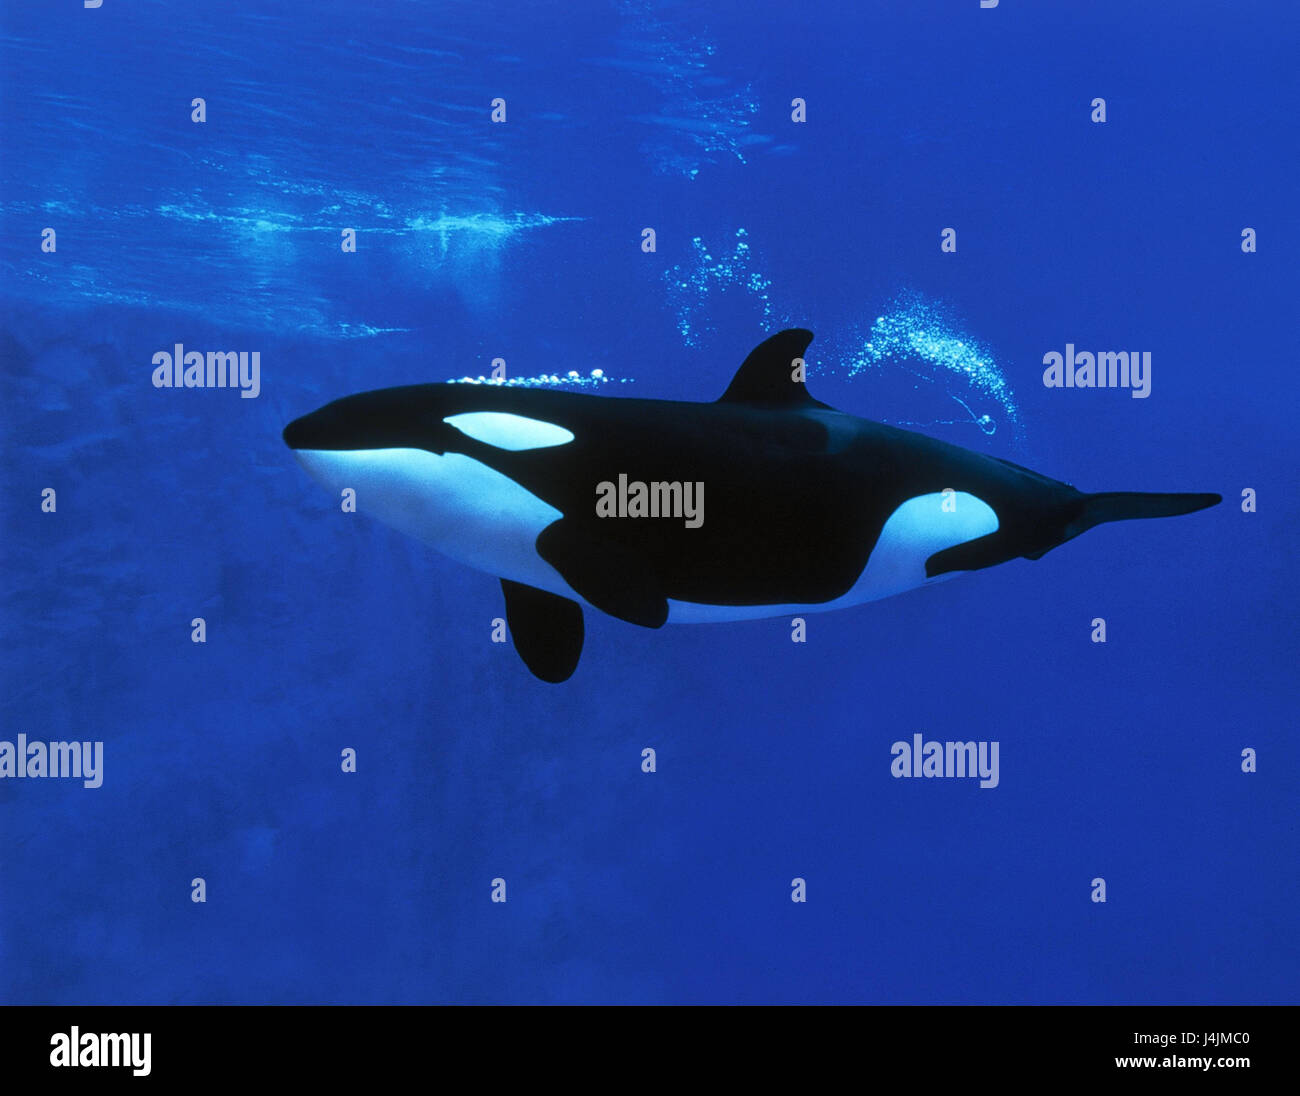 Underwater recording, killer whale, Orcinus orca, dip mammals, mammal, toothed whales, cog wood, Odontoceti, scab - Stock Image